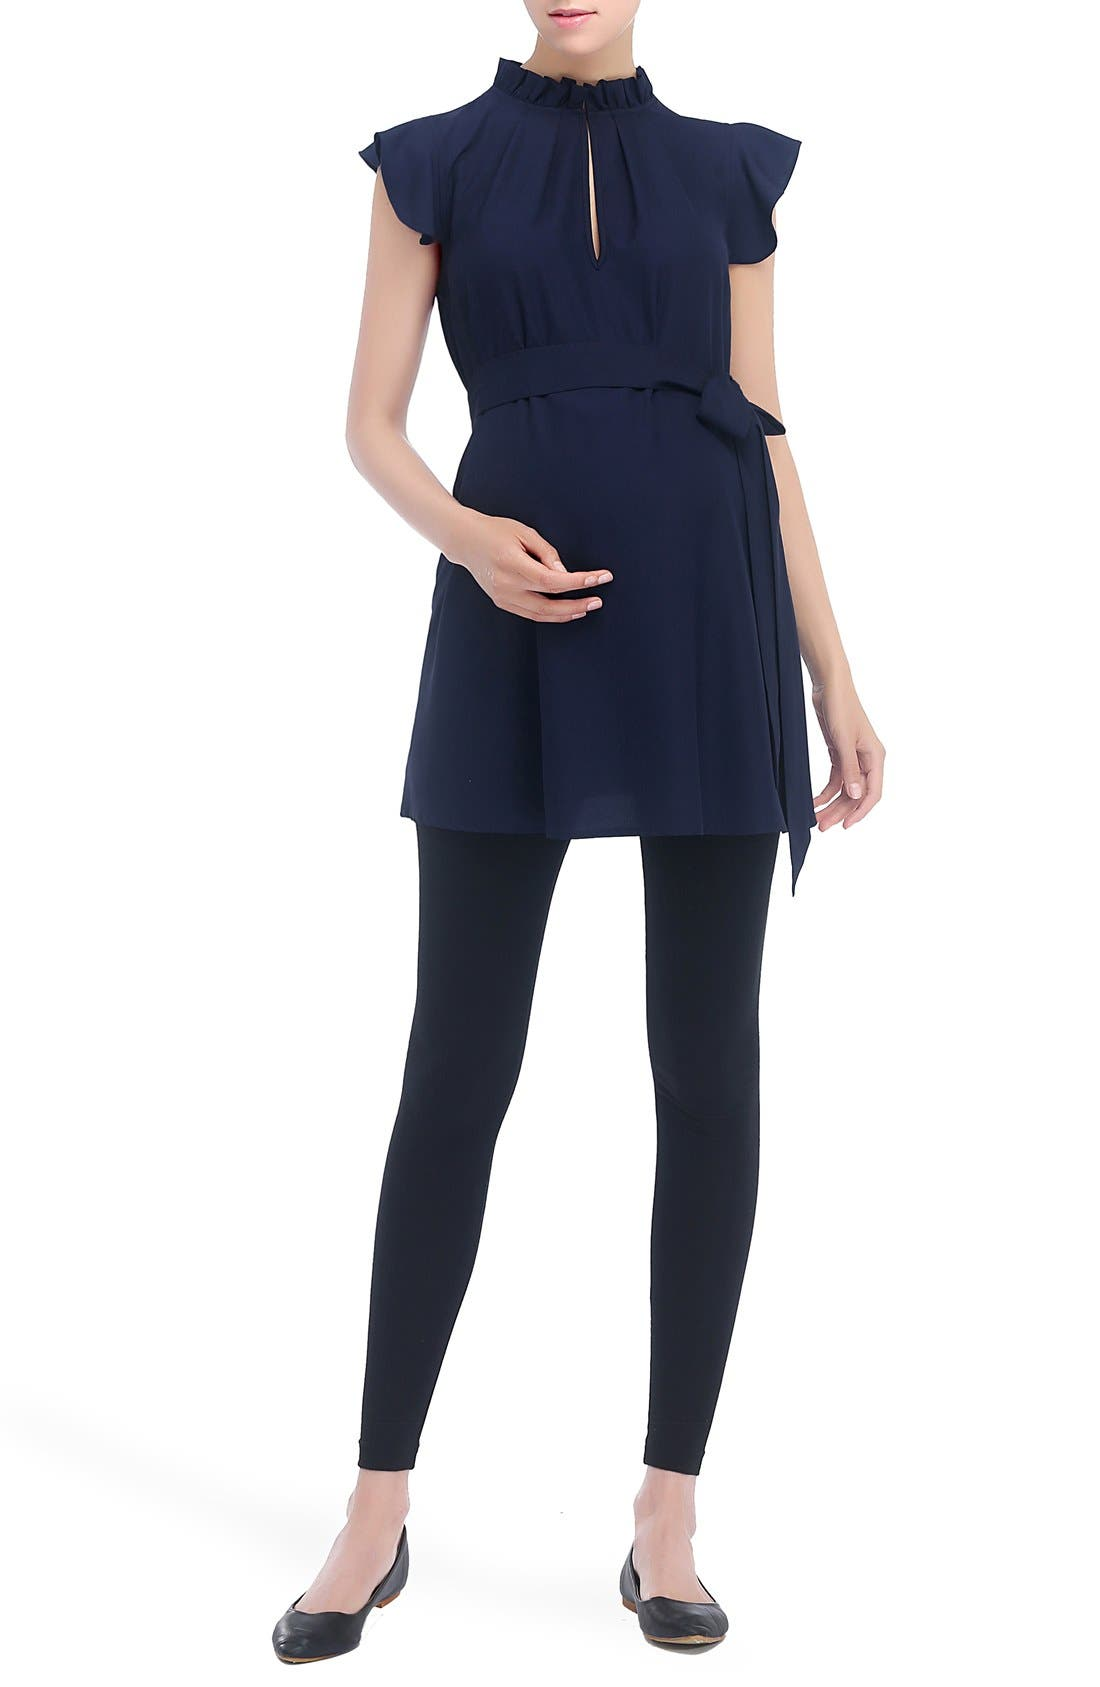 KIMI AND KAI, Karlena Flutter Sleeve Belted Maternity Top, Main thumbnail 1, color, NAVY